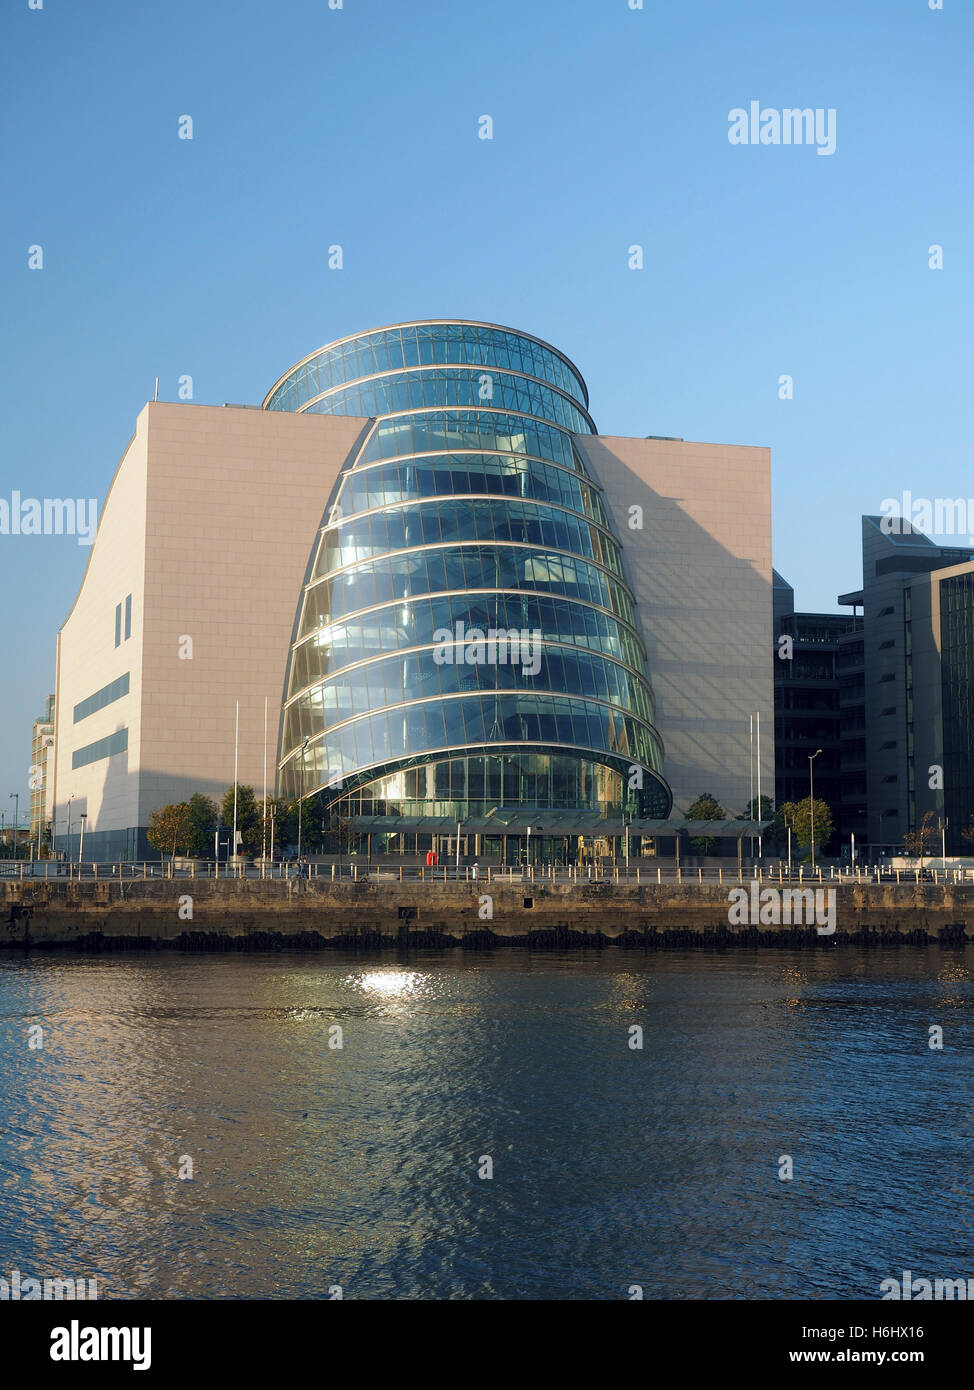 Curved Architecture Modern Architecture New Glass Curved Angled Convention Center